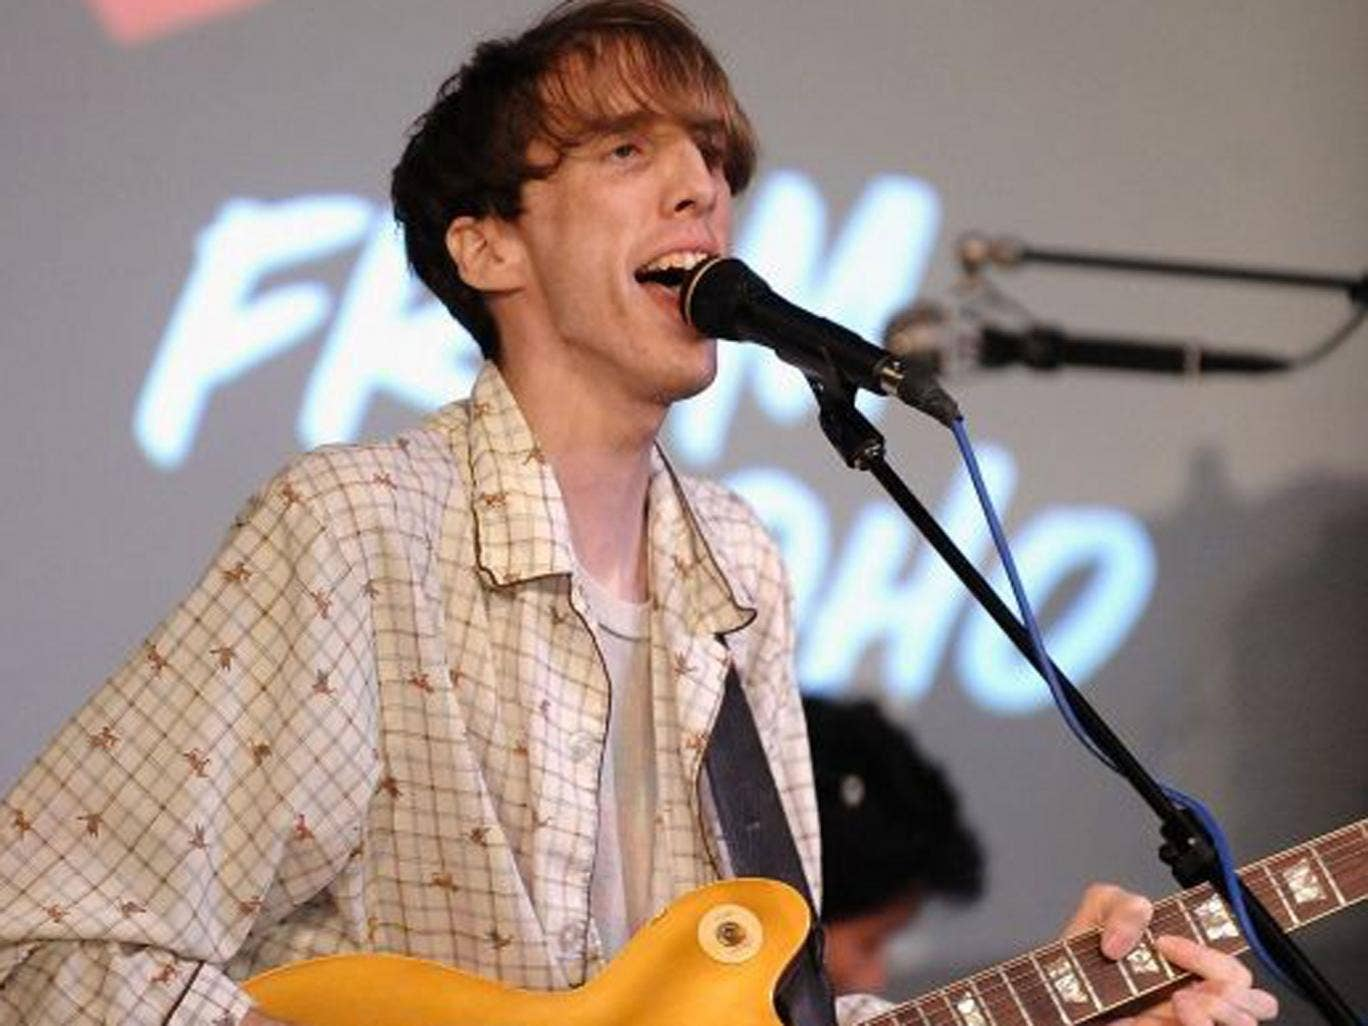 Deerhunter have returned with their first album since 2010